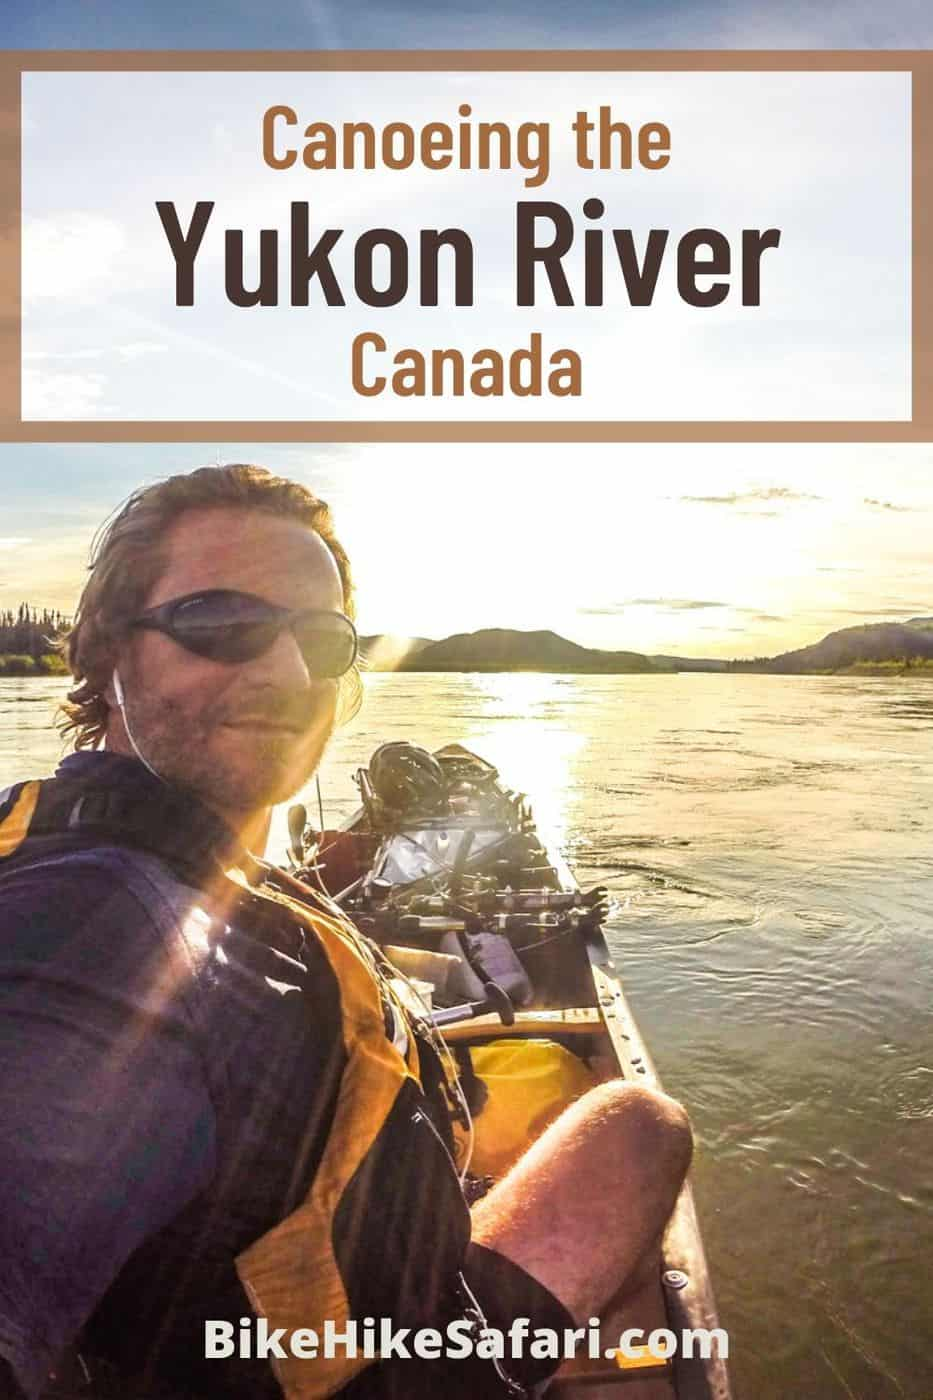 Canoeing the Yukon River Canada